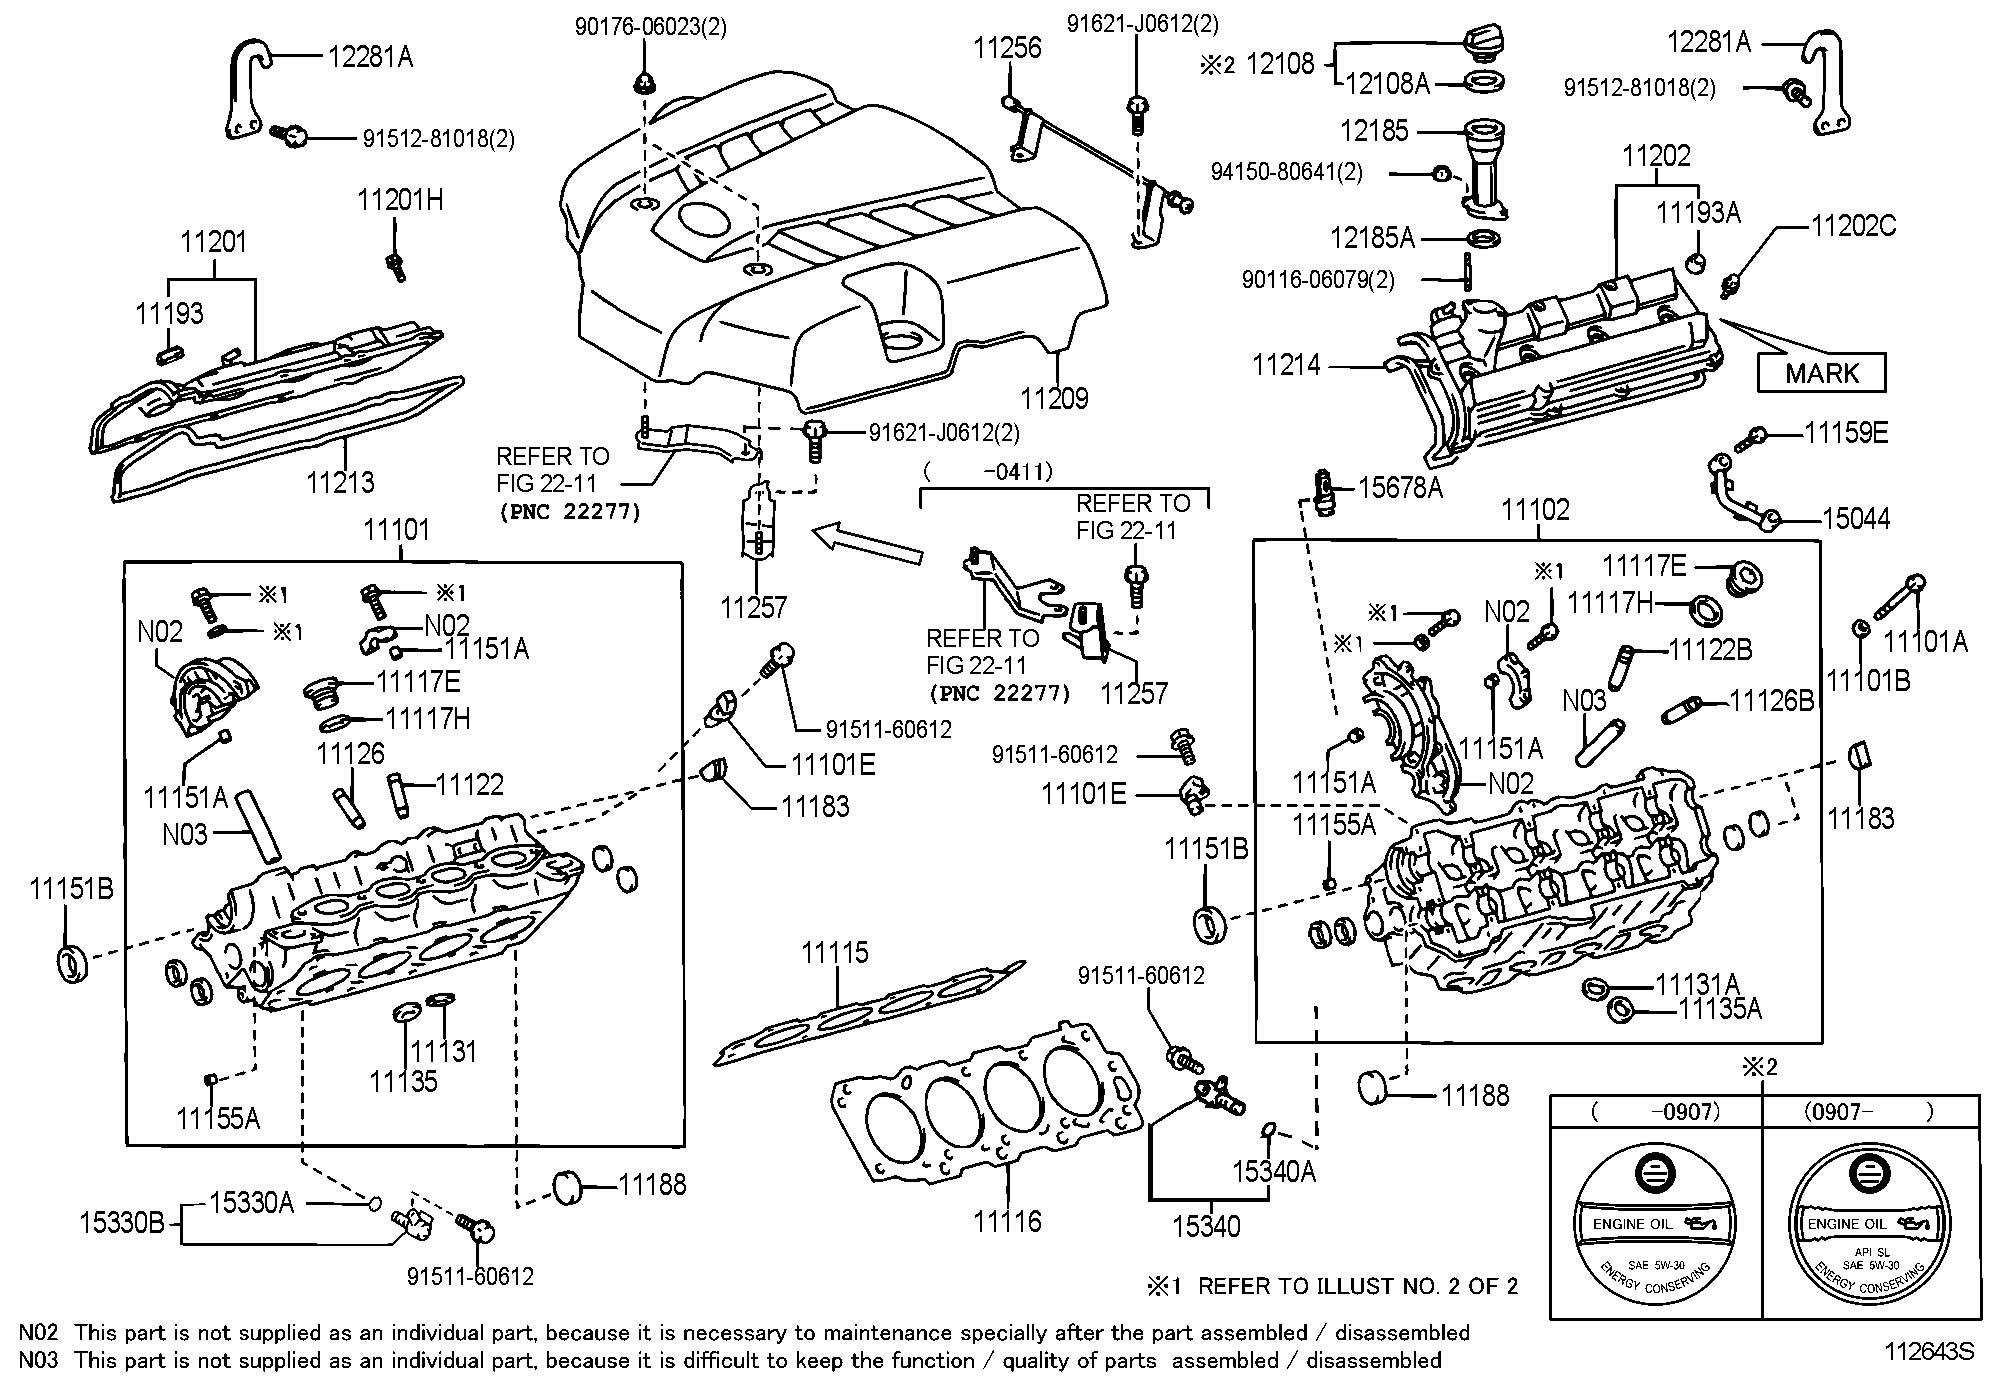 1999 Lexus Rx300 Rear Hatch Parts Diagram • Wiring Diagram